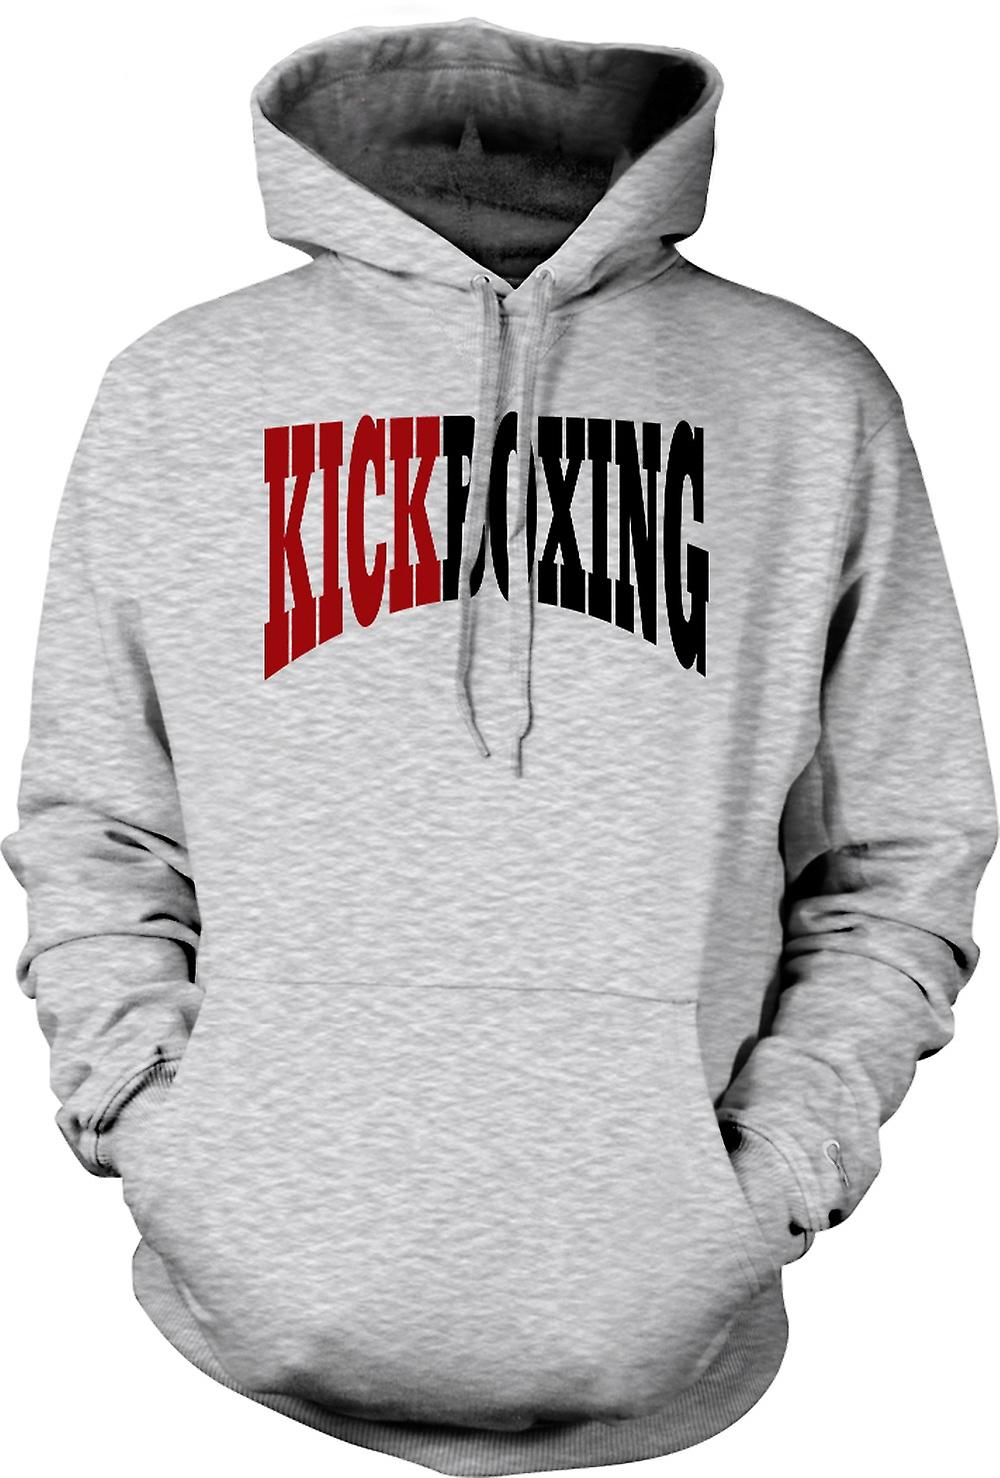 Mens Hoodie - Kickboxing - Art Martial - Slogan